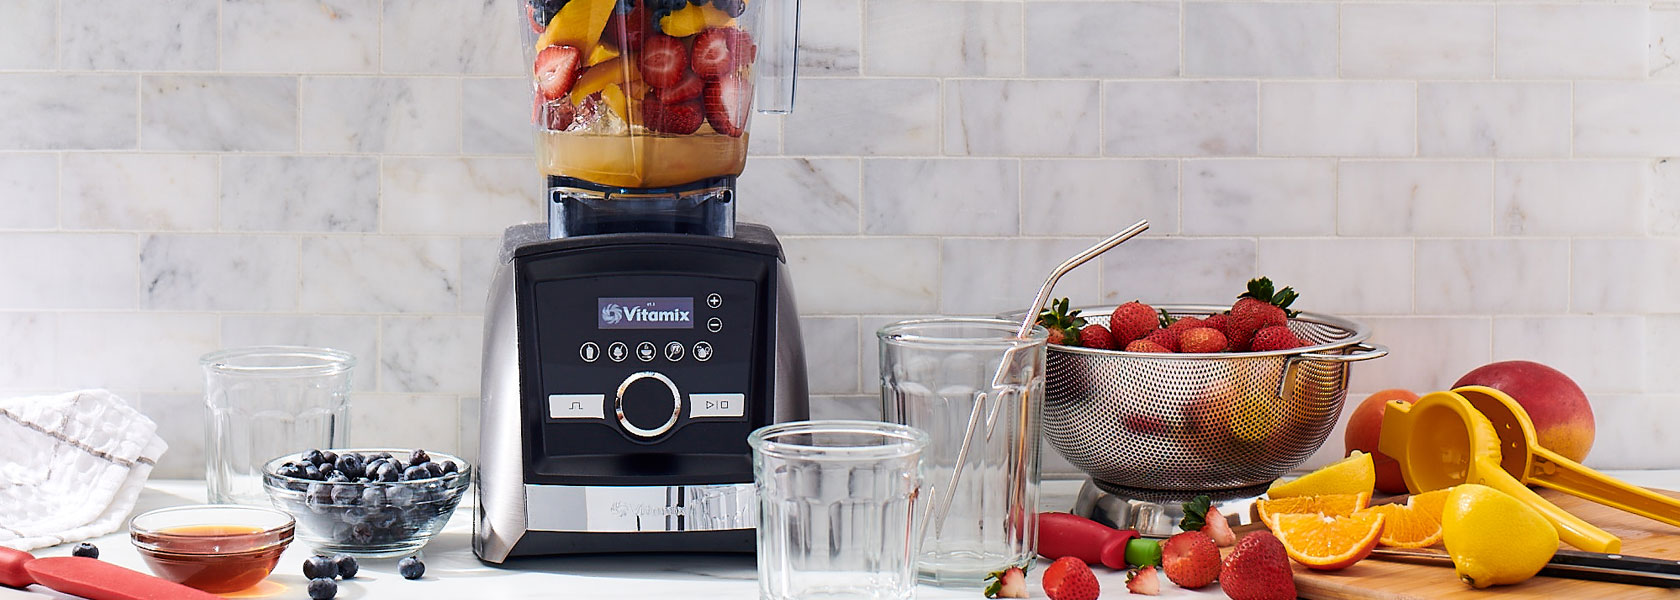 Vitamix blender with fresh fruit